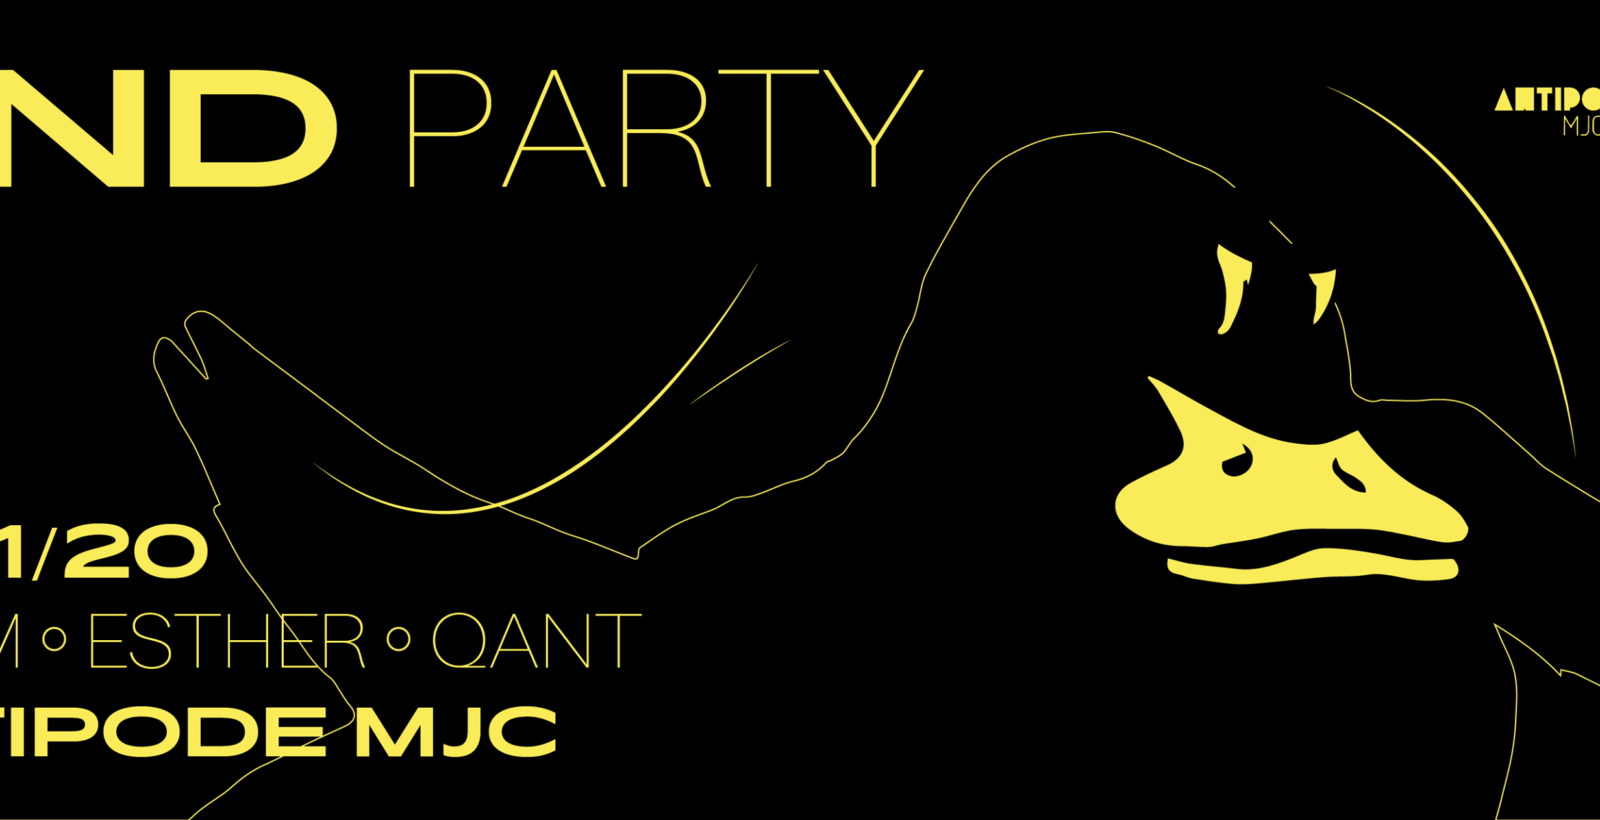 ondparty